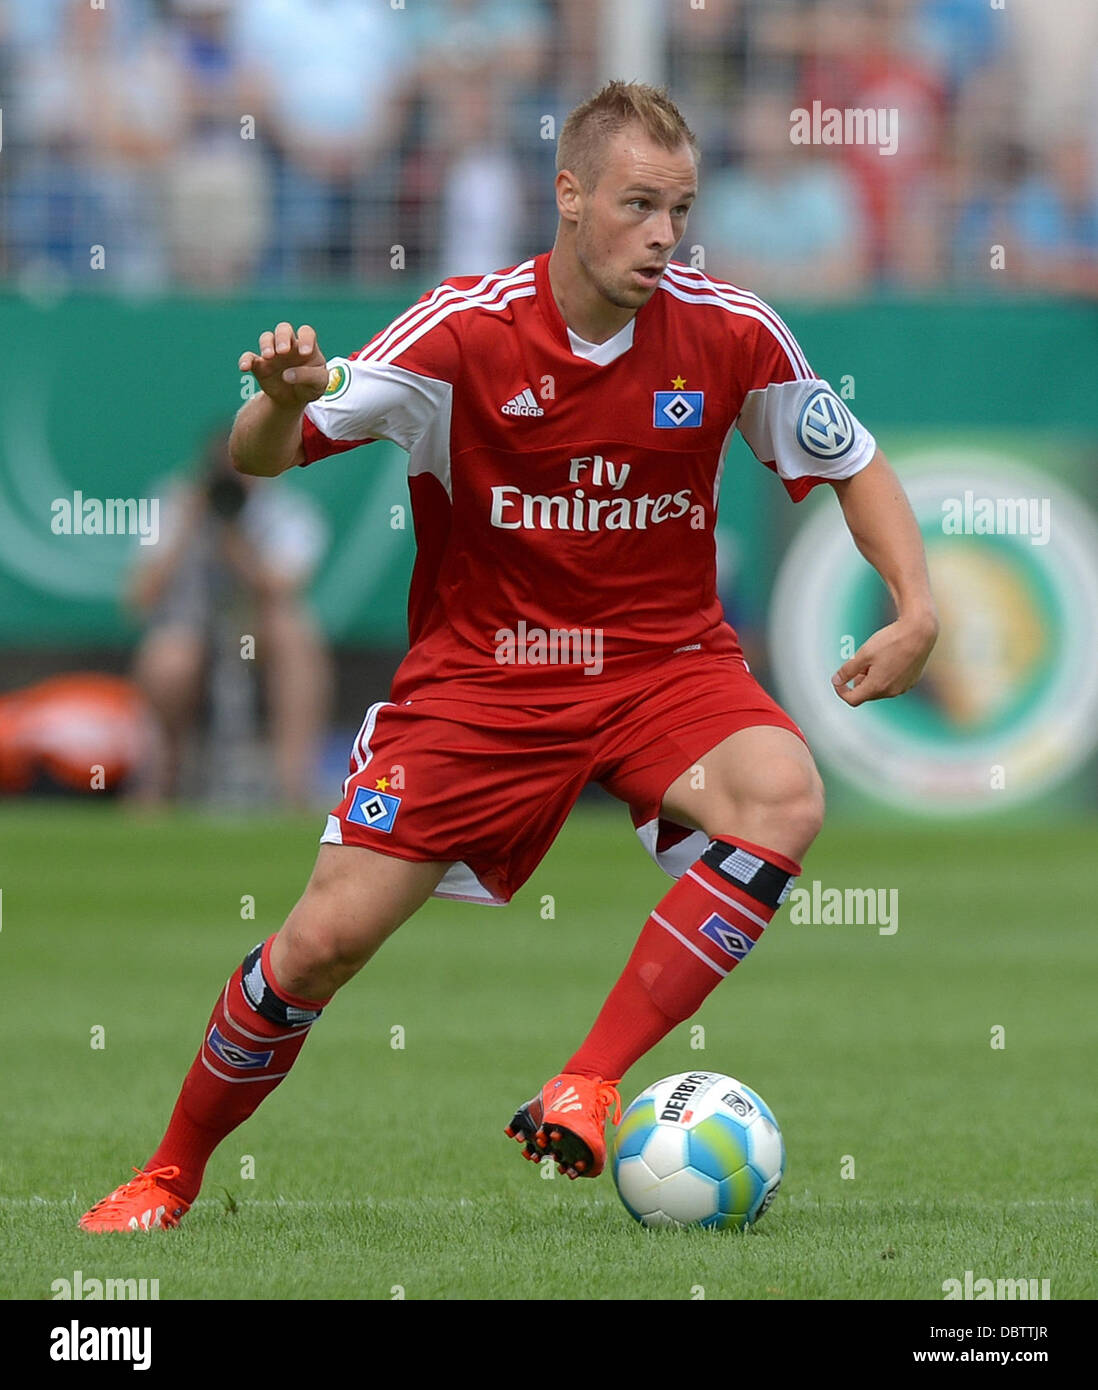 Jena, Germany. 04th Aug, 2013. Hamburg's Maximilian Beister plays the ball during the first round DFB Cup match - Stock Image